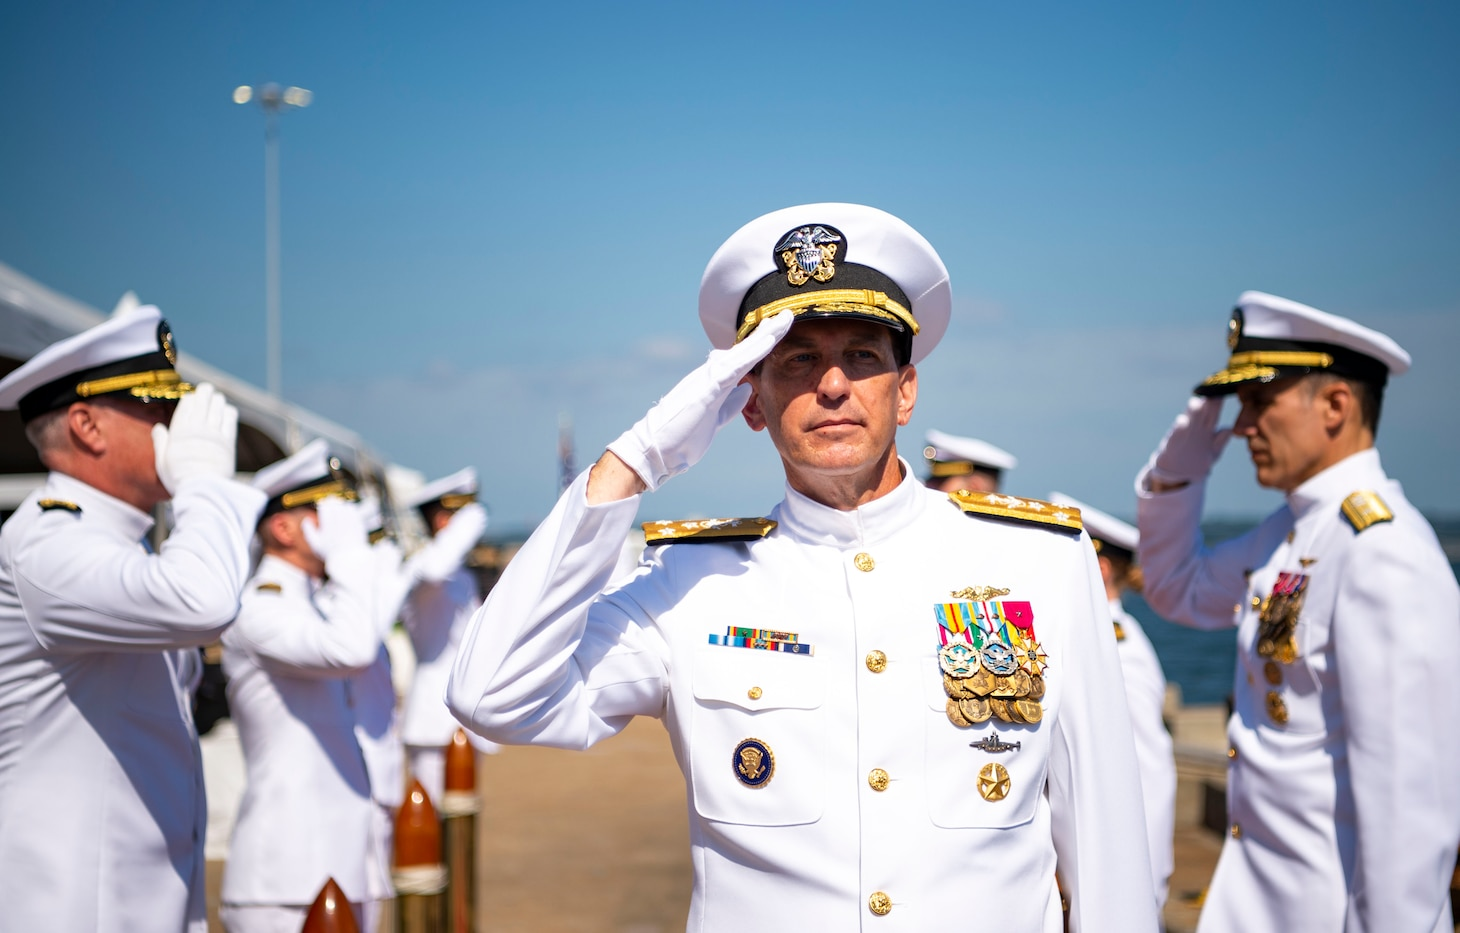 Vice Adm. David M. Kriete, center, deputy commander, U.S. Fleet Forces Command (USFFC) passes through the side boys during his retirement ceremony on board USS New Hampshire (SSN-78).